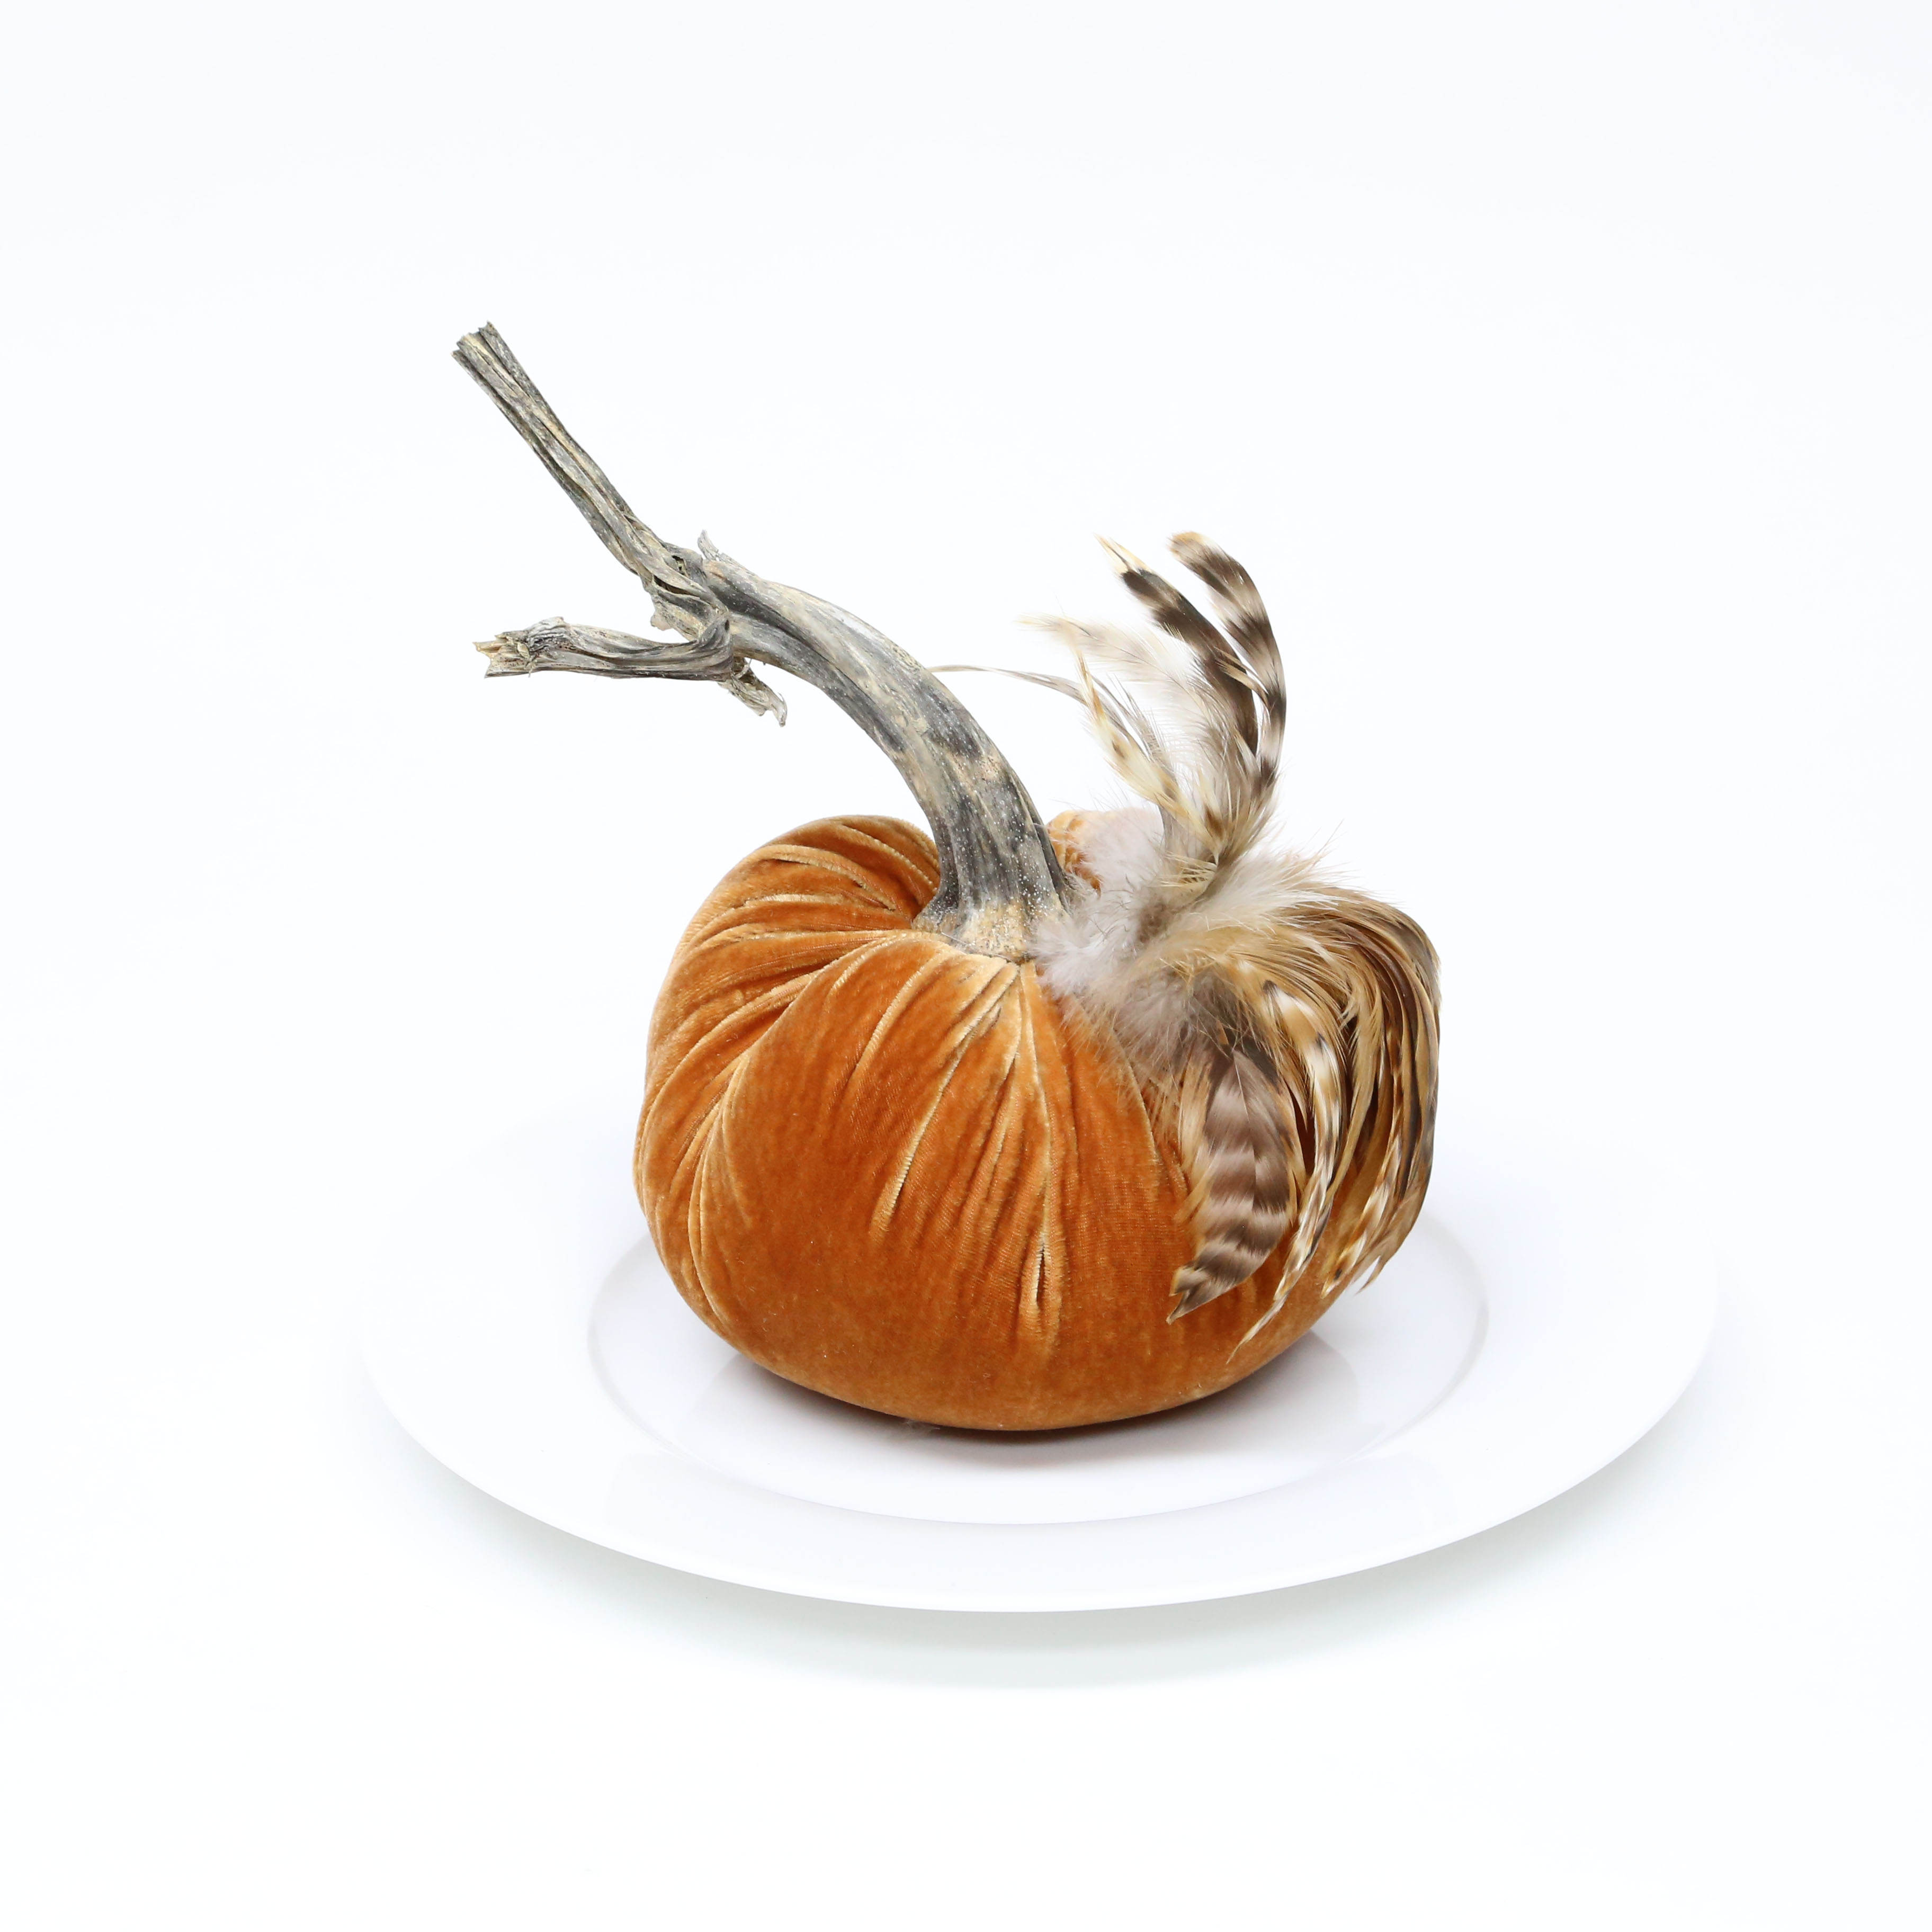 'LoveFeast Shop' from the web at 'http://lovefeasttable.com/blog/wp-content/uploads/2017/10/6-inch-Velvet-Pumpkin-with-Feathers.jpg'